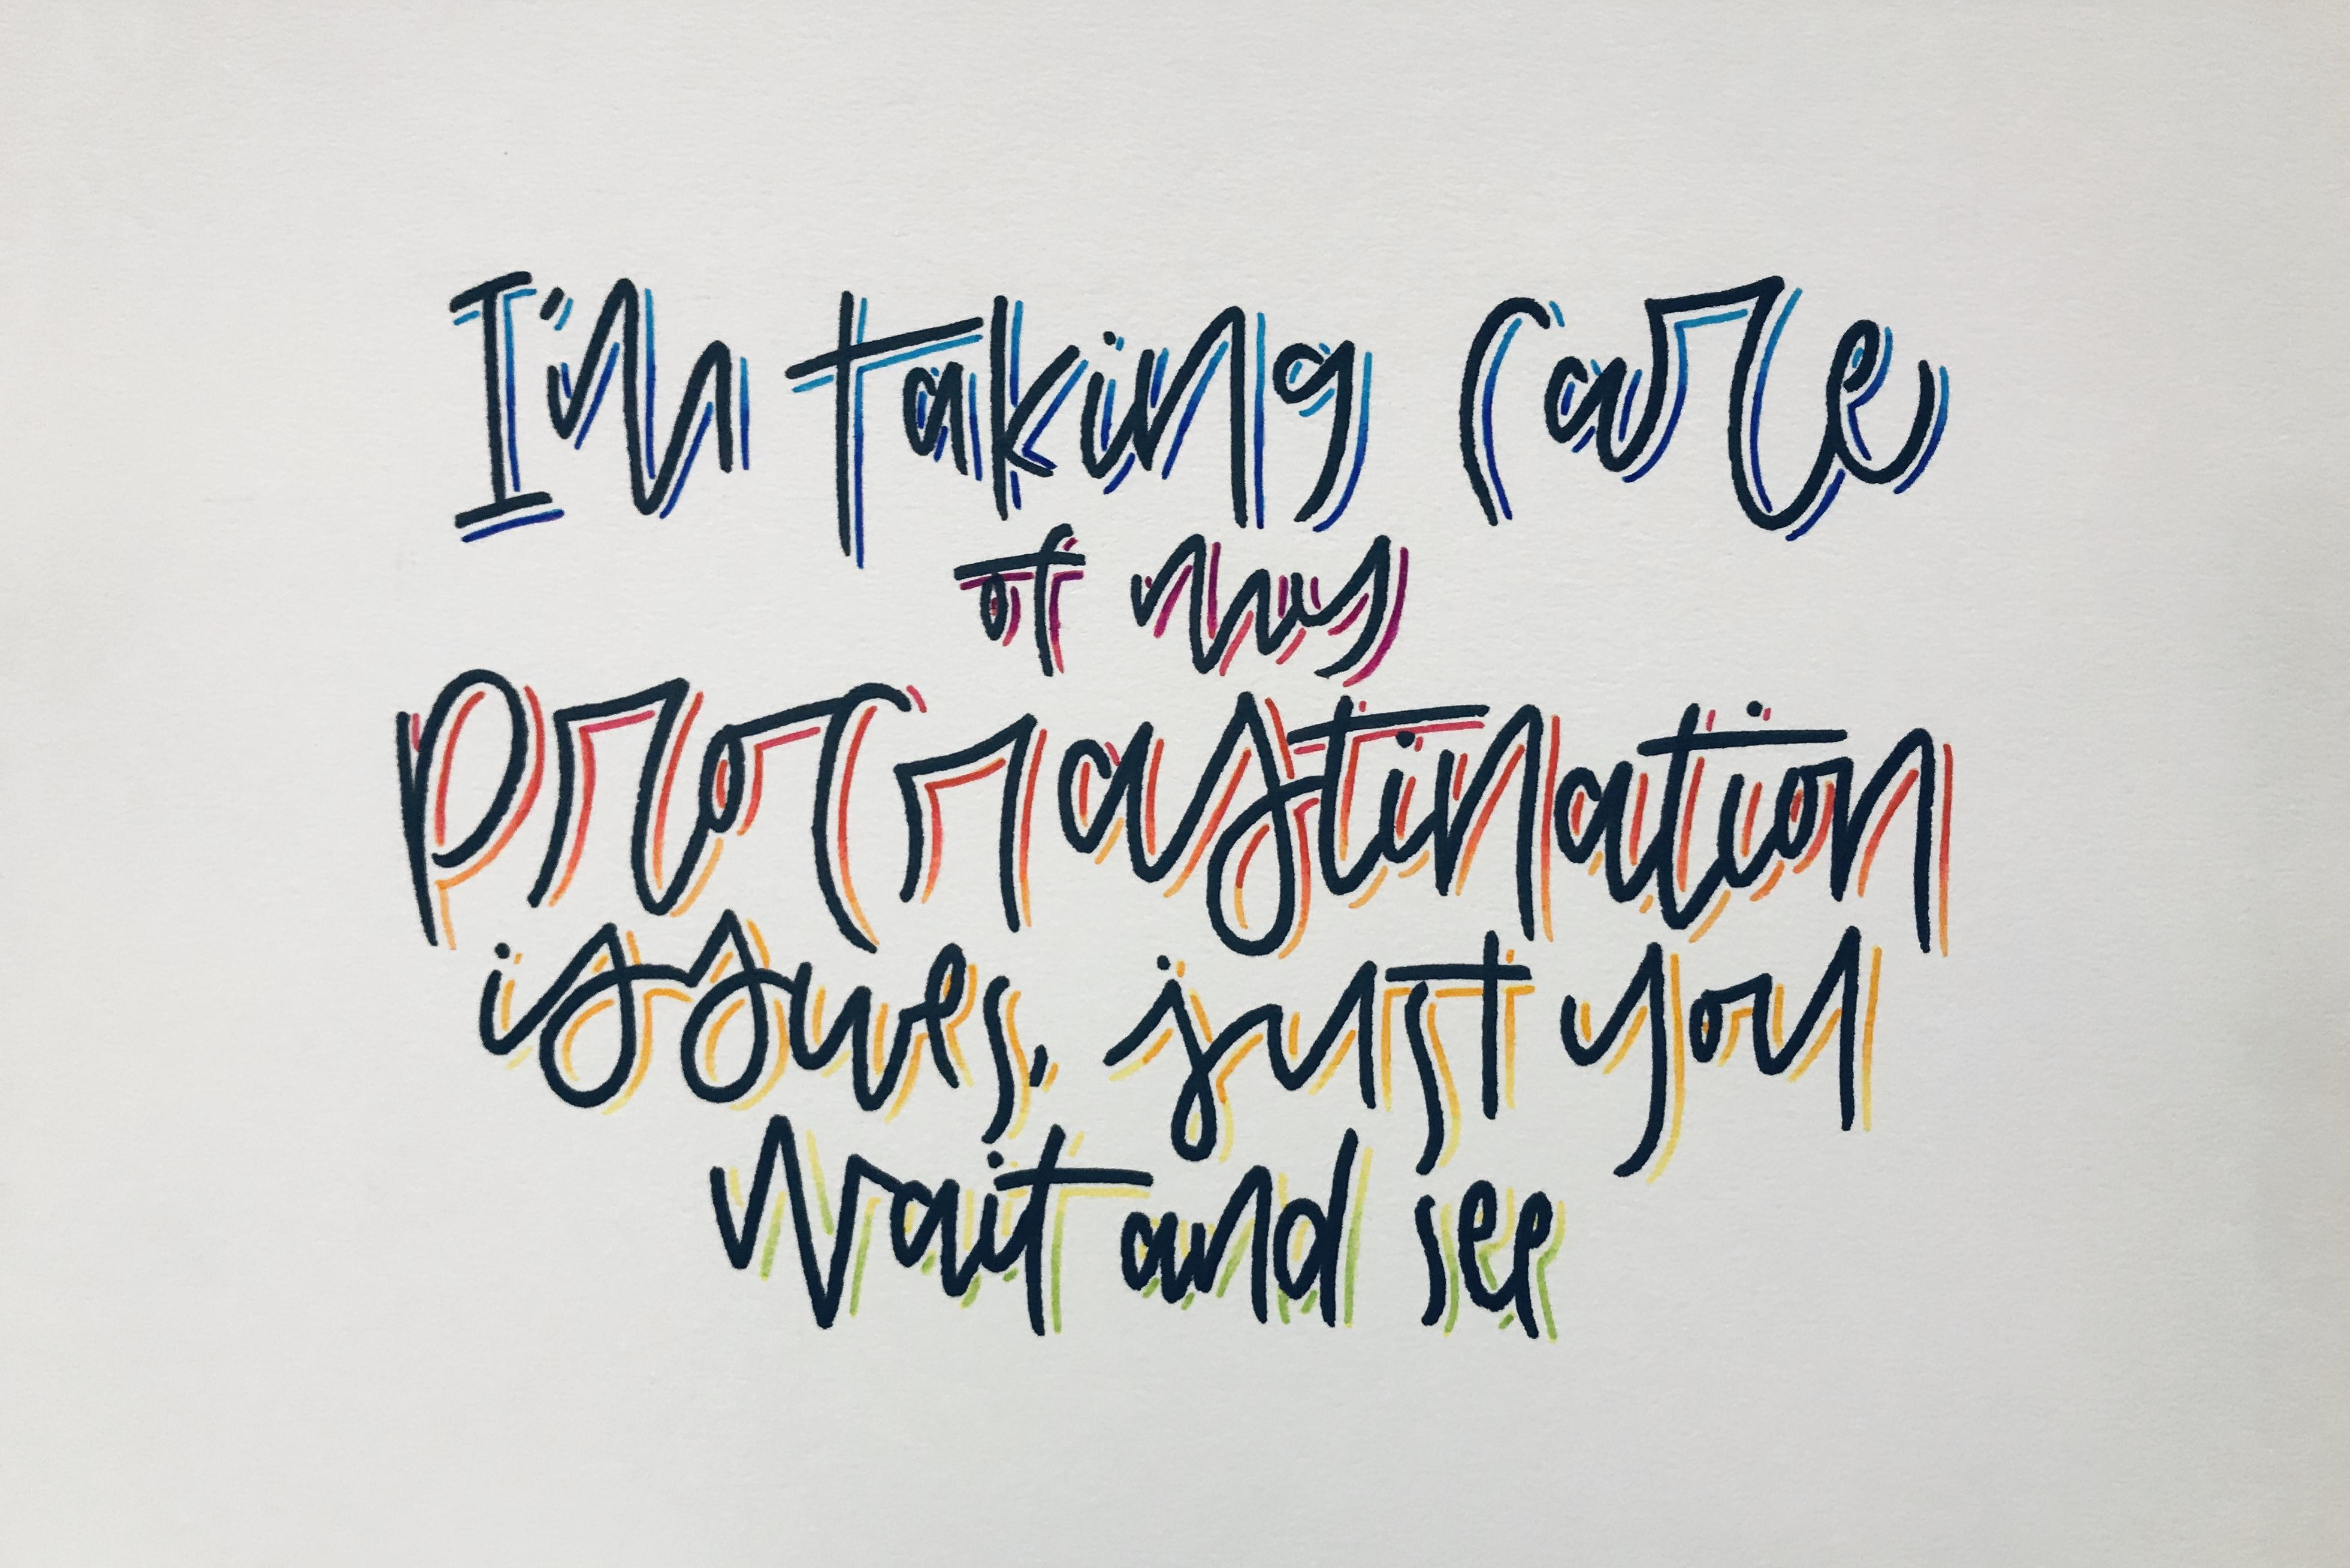 Hand lettering by Mia Woo